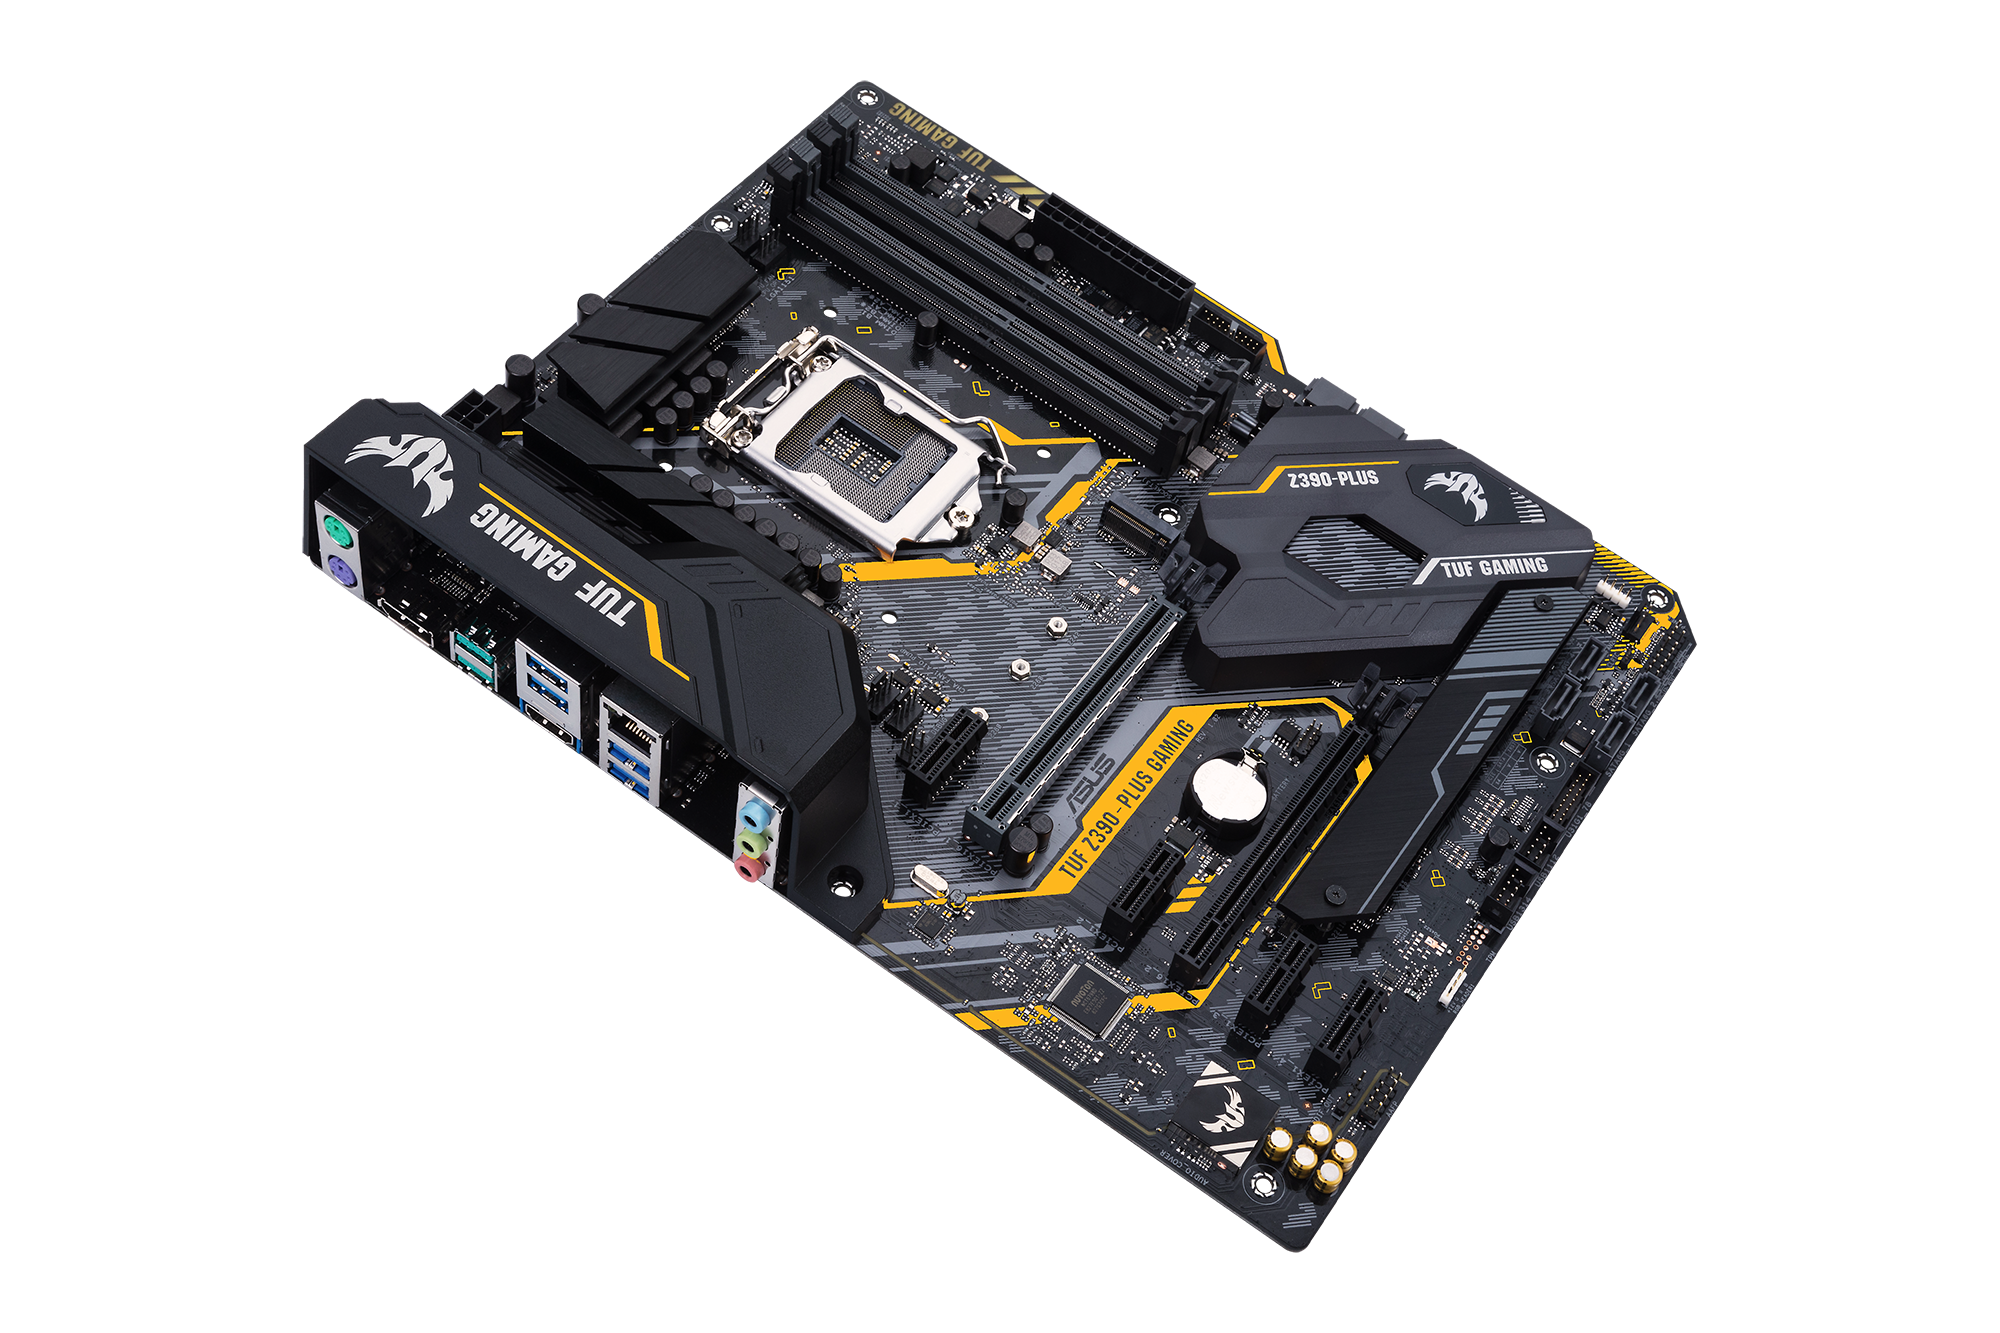 Intel Z390 TUF GAMING PLUS - ATX